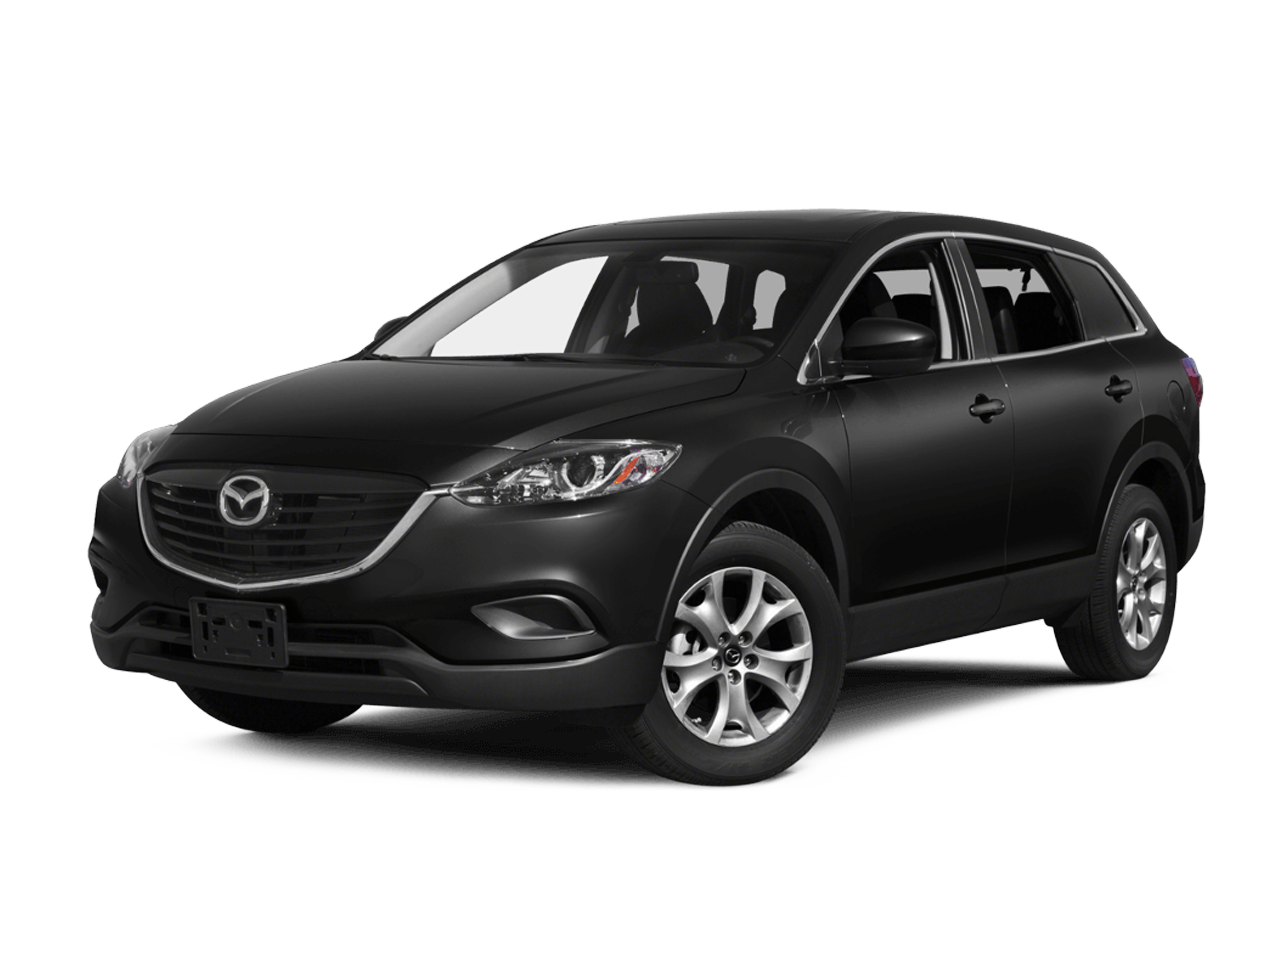 2015 mazda 3 mps autos post autos post. Black Bedroom Furniture Sets. Home Design Ideas